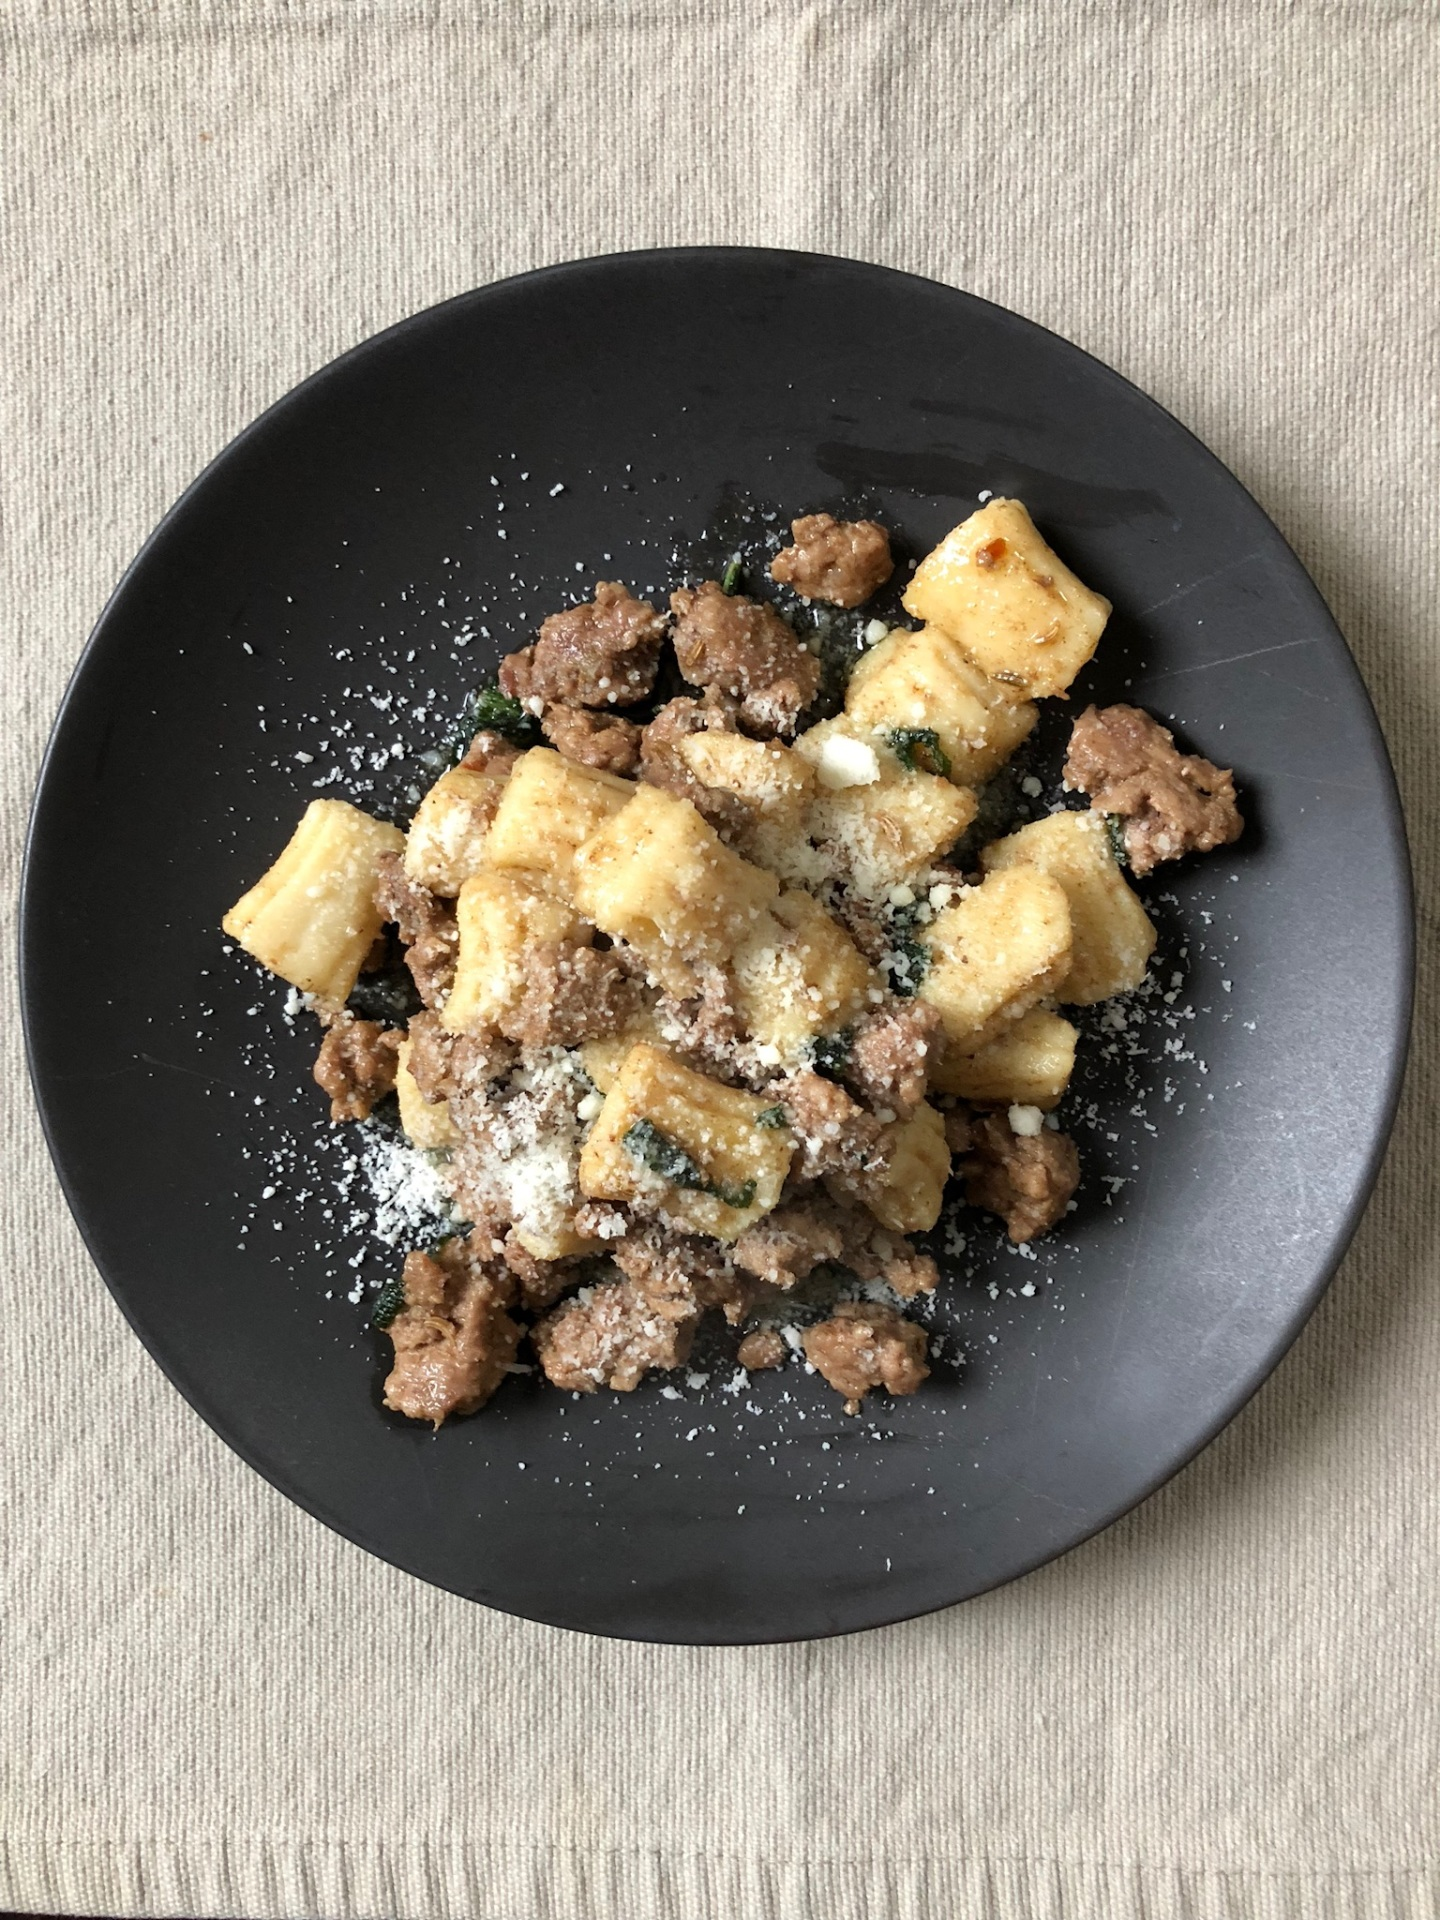 Grain-Free Gnocchi with Sausage and Brown Butter-Sage Sauce